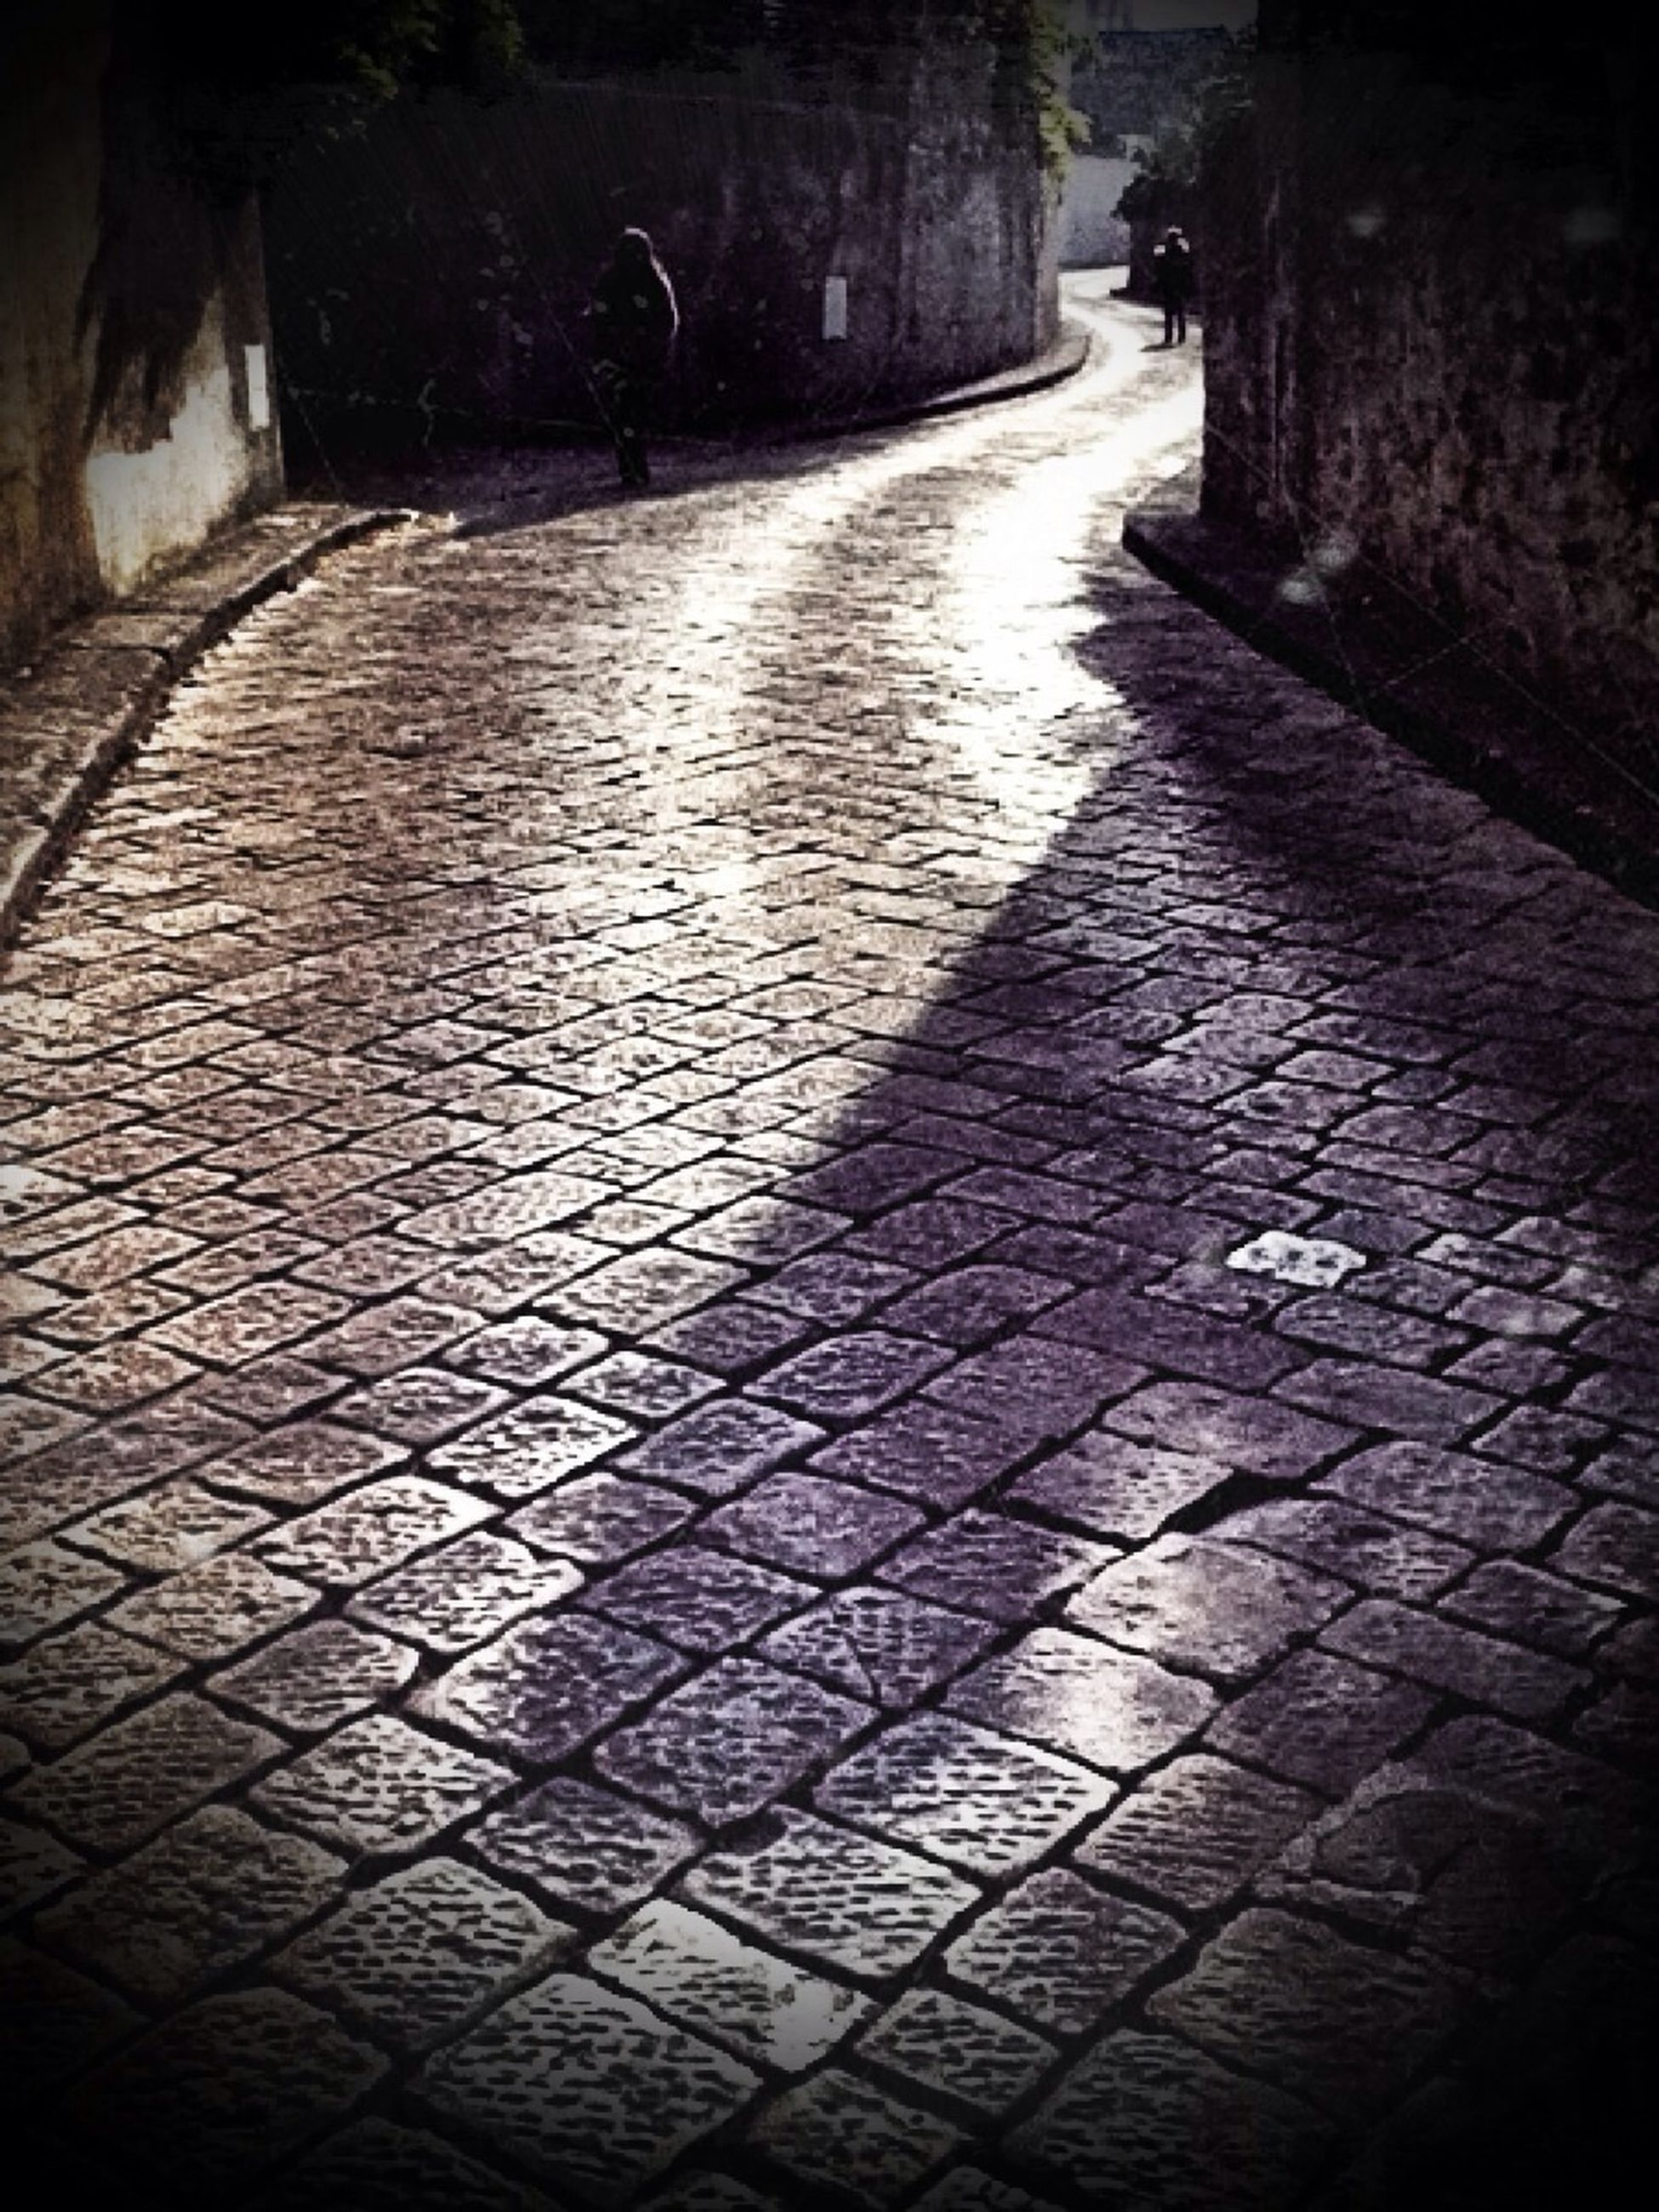 the way forward, diminishing perspective, cobblestone, built structure, architecture, shadow, vanishing point, sunlight, walkway, footpath, narrow, paving stone, empty, street, pattern, pathway, wall - building feature, night, no people, absence